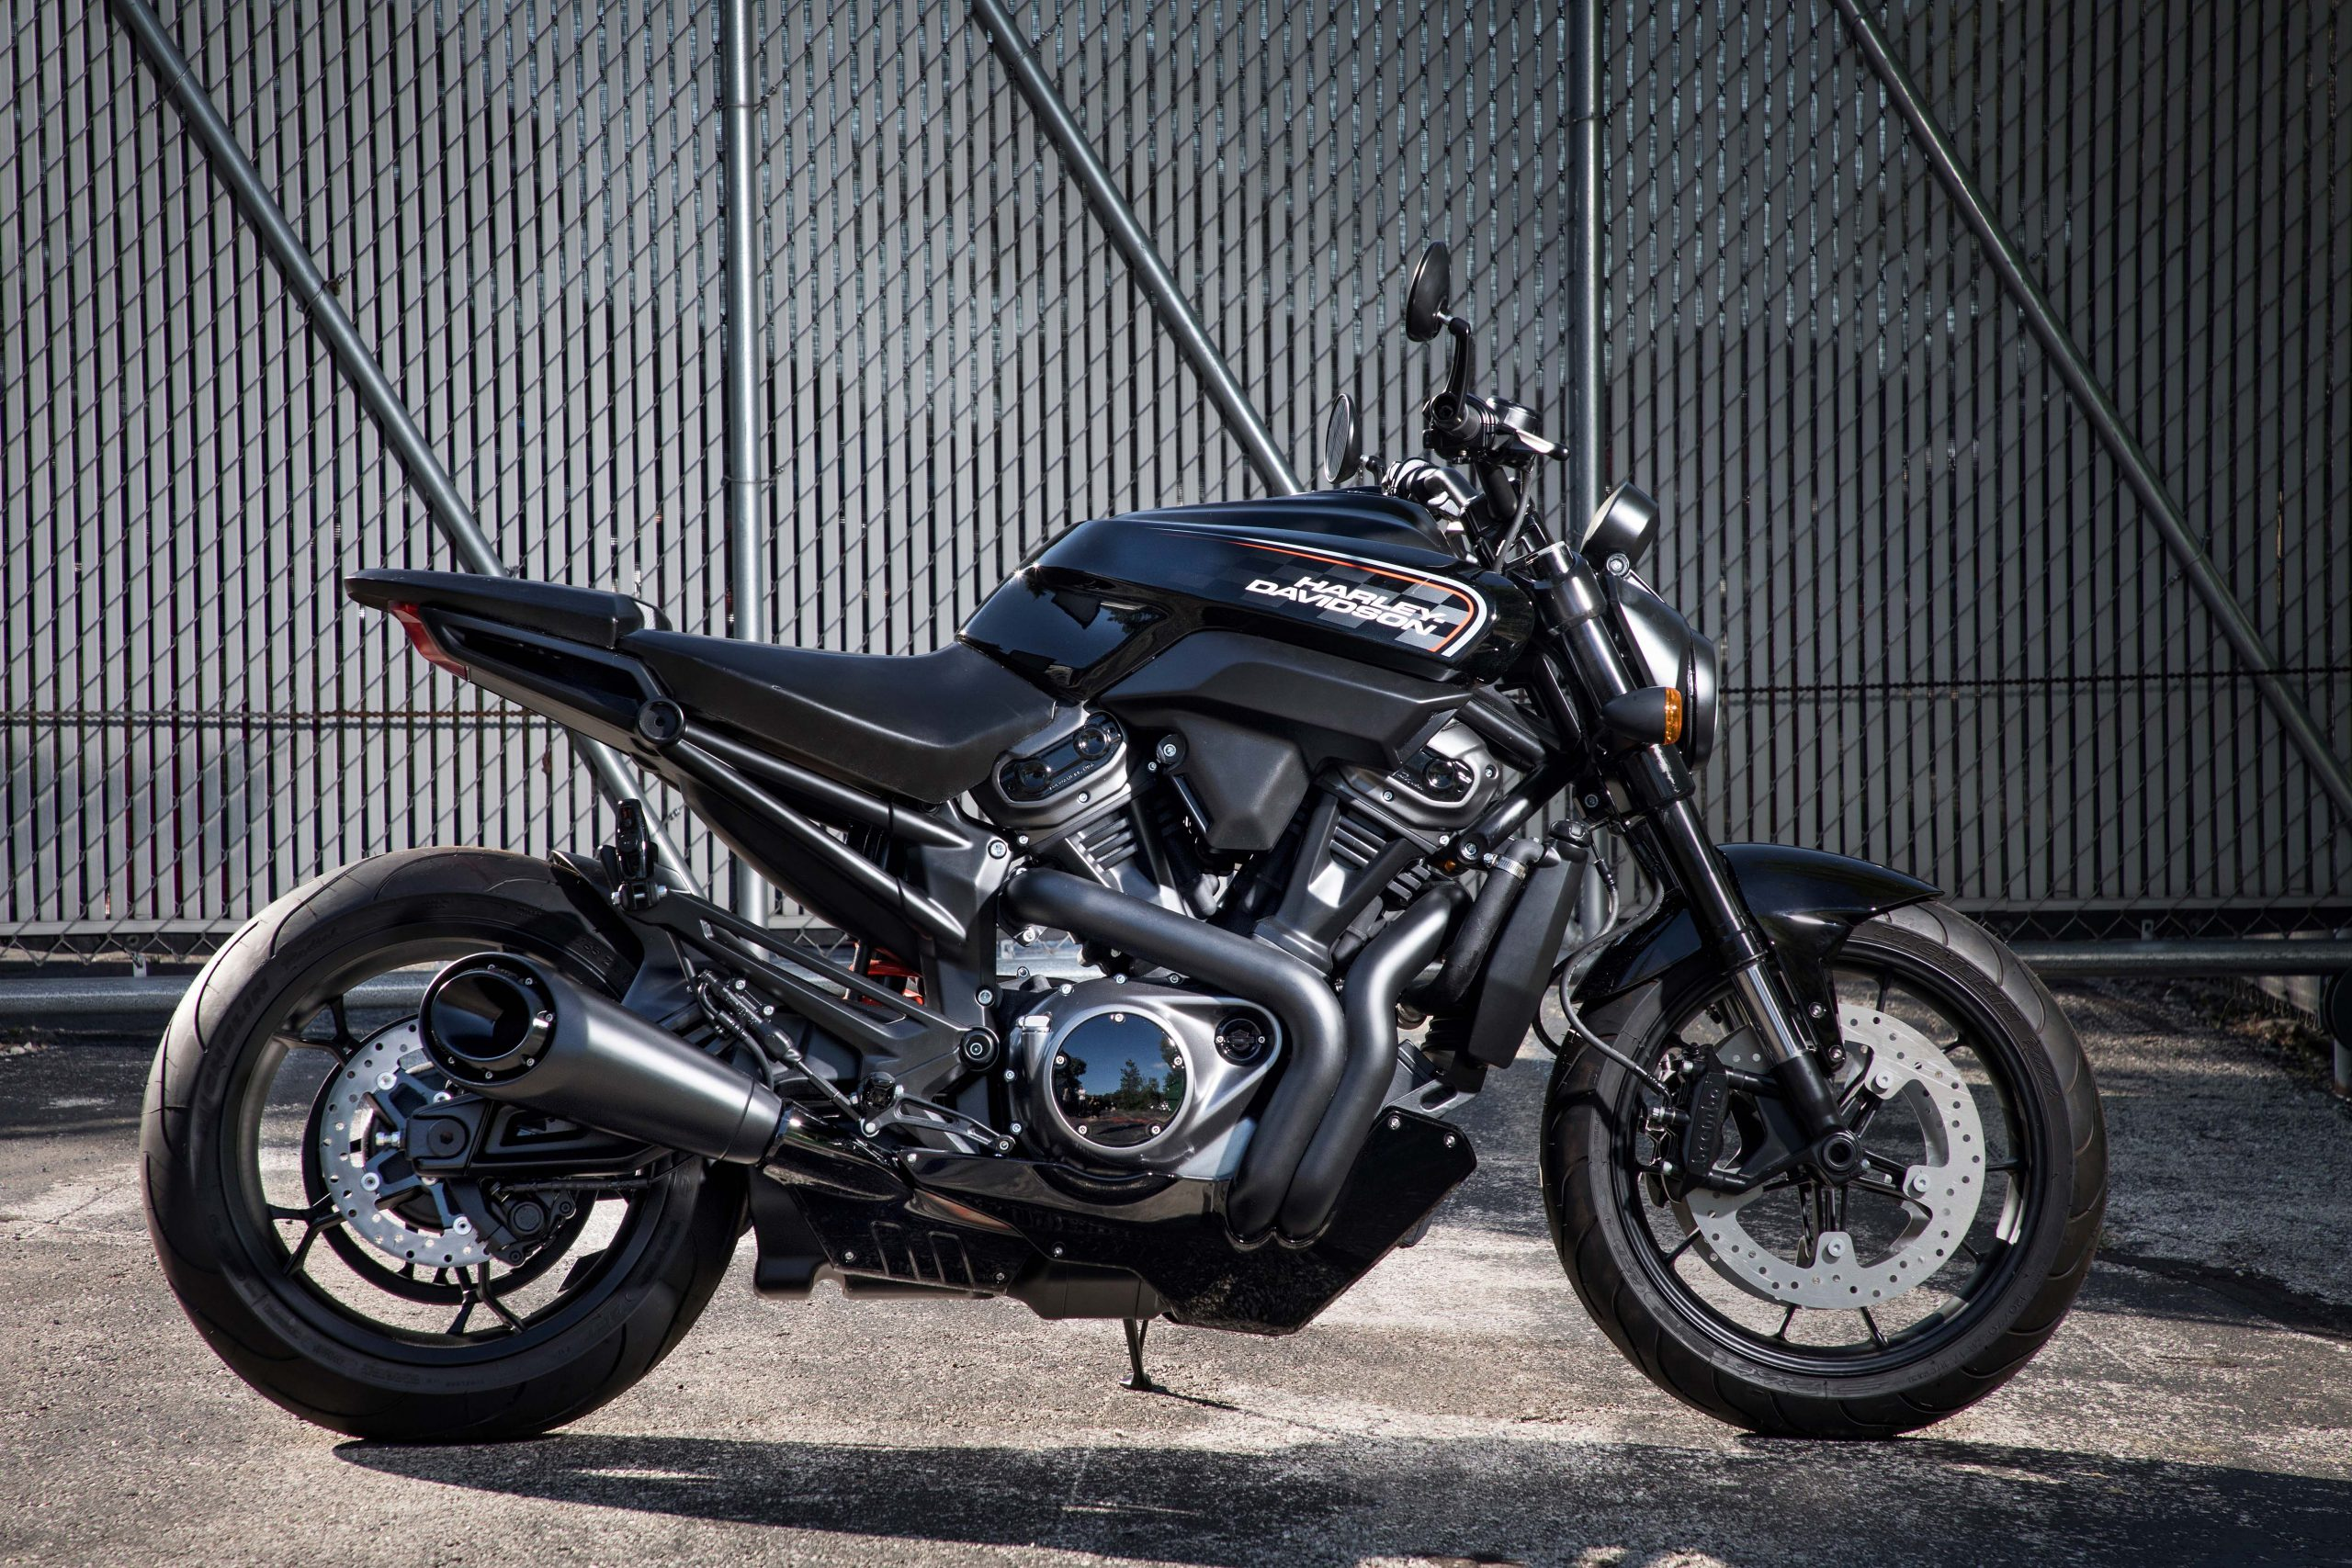 Harley Davidson Streetfighter Model Coming For 2020 Asphalt Rubber